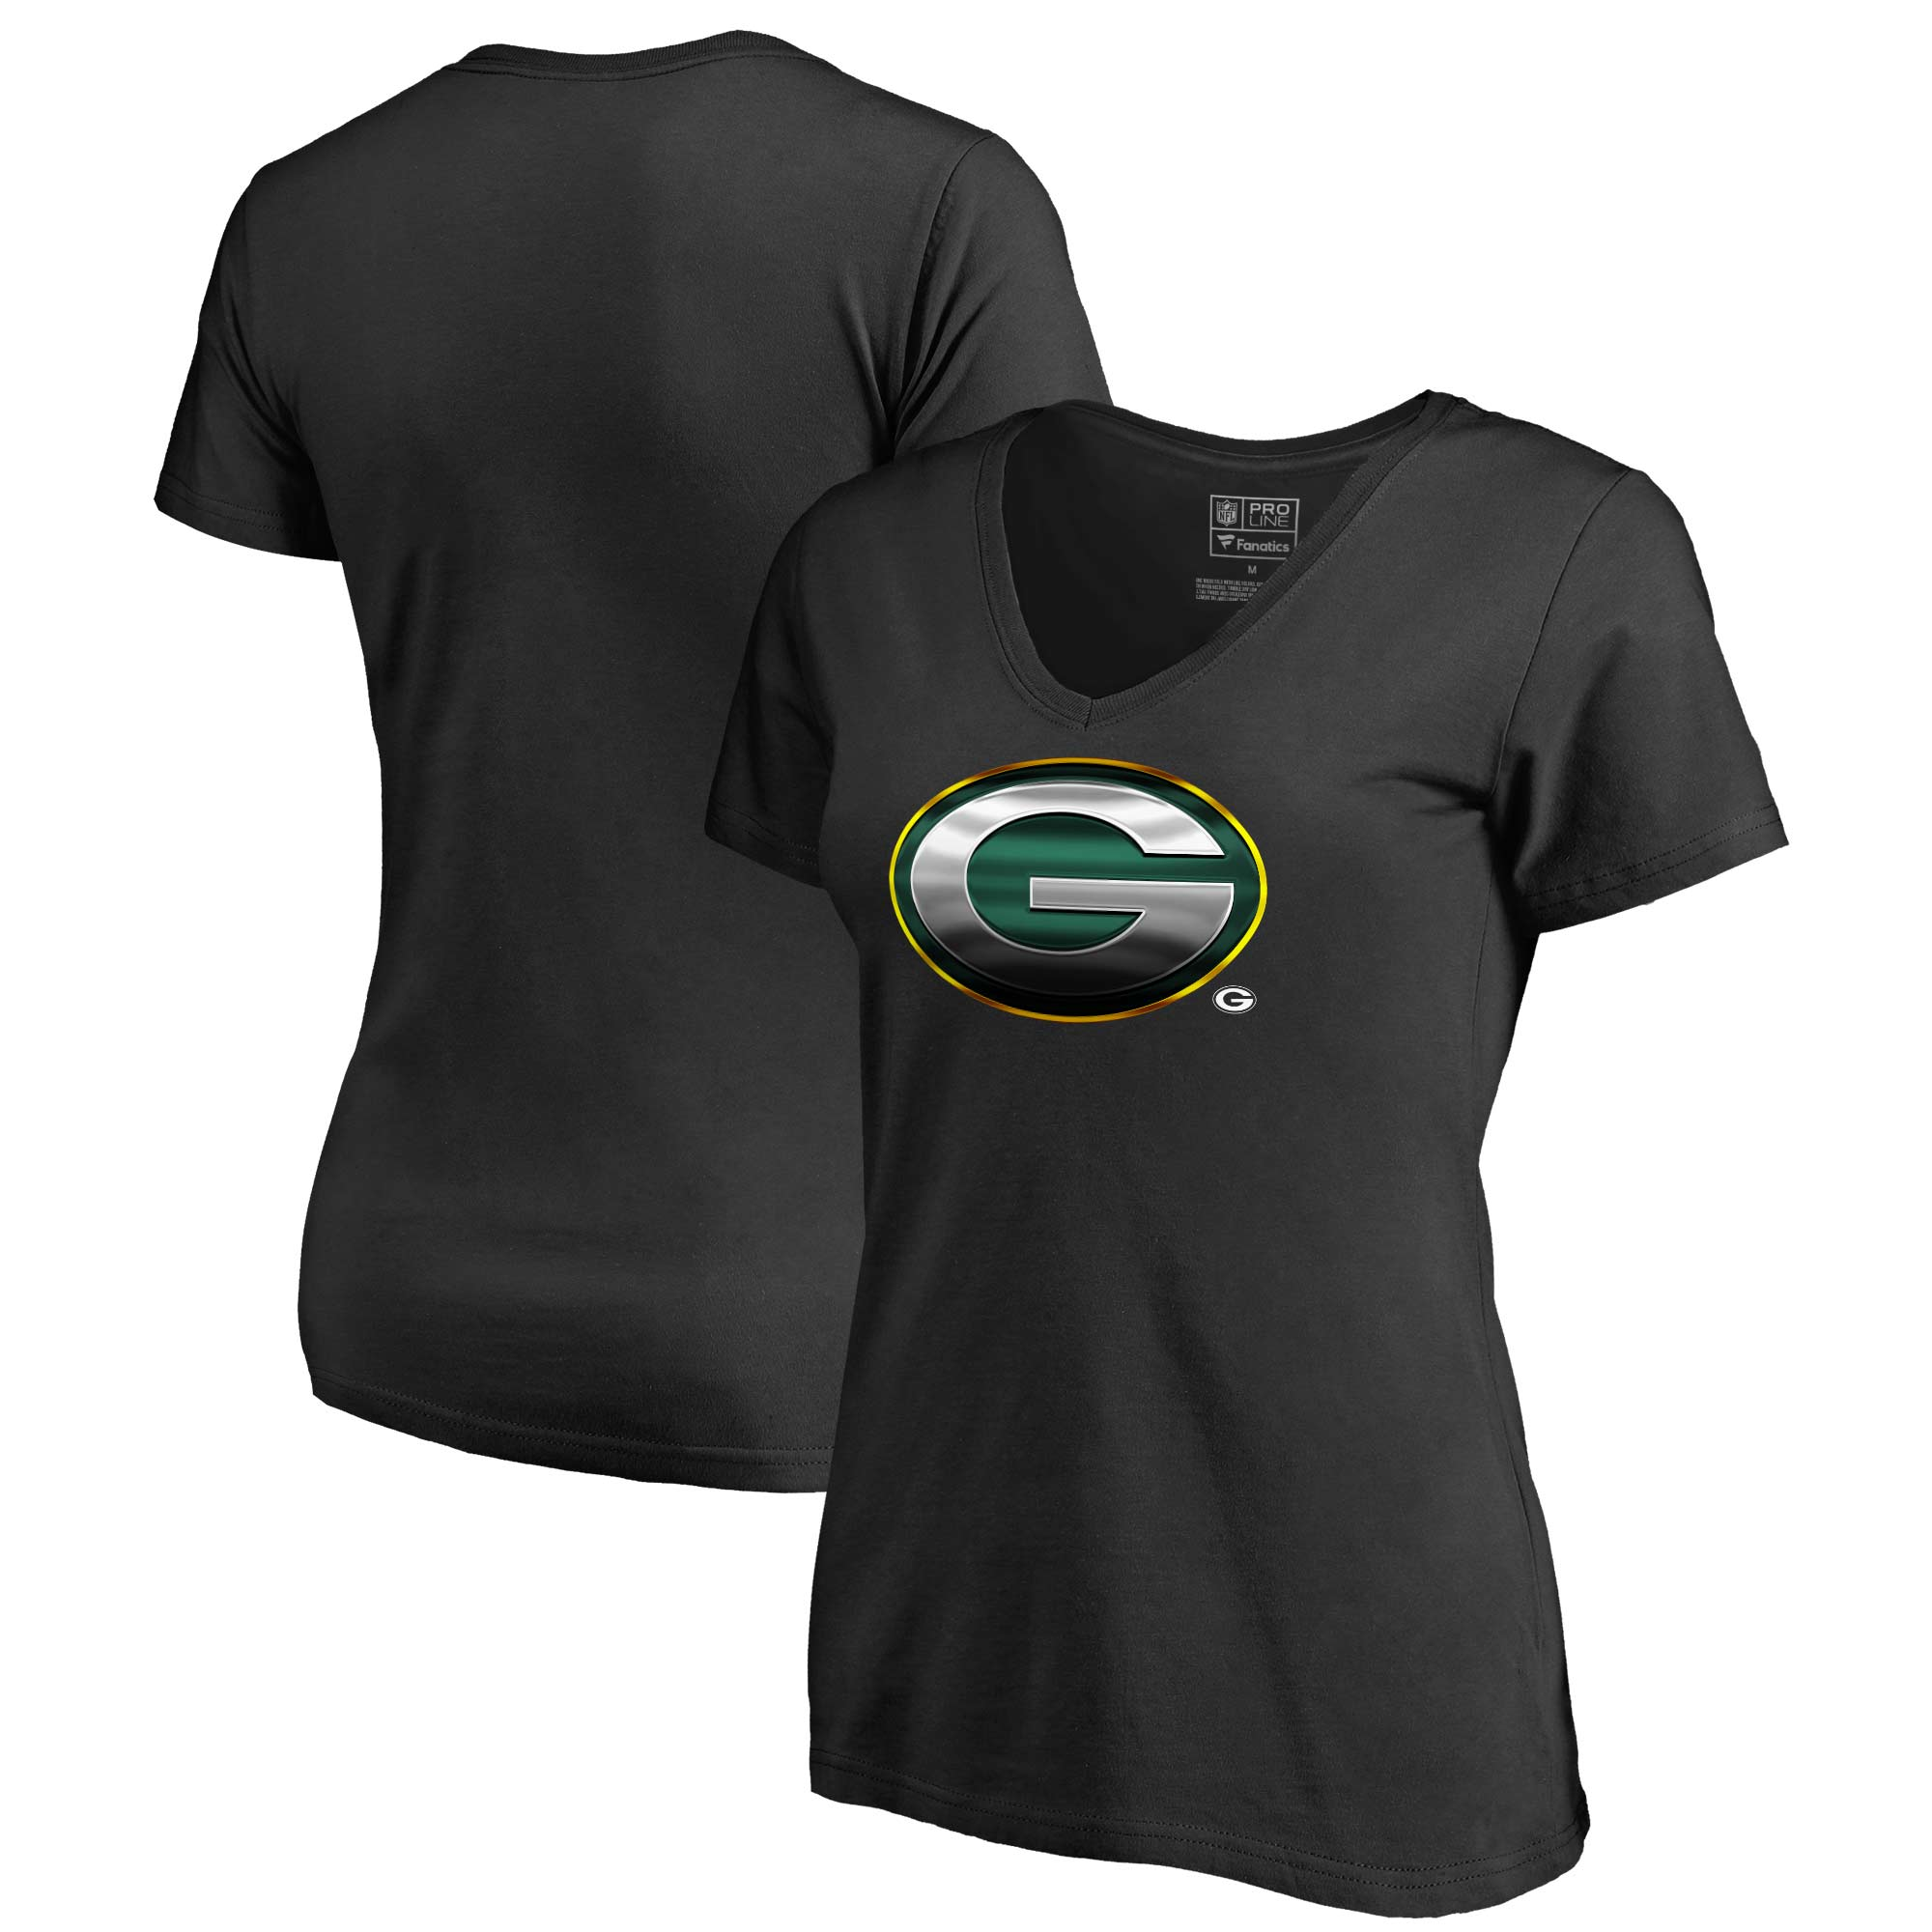 Green Bay Packers NFL Pro Line by Fanatics Branded Women's Primary Midnight Mascot V-Neck T-Shirt - Black